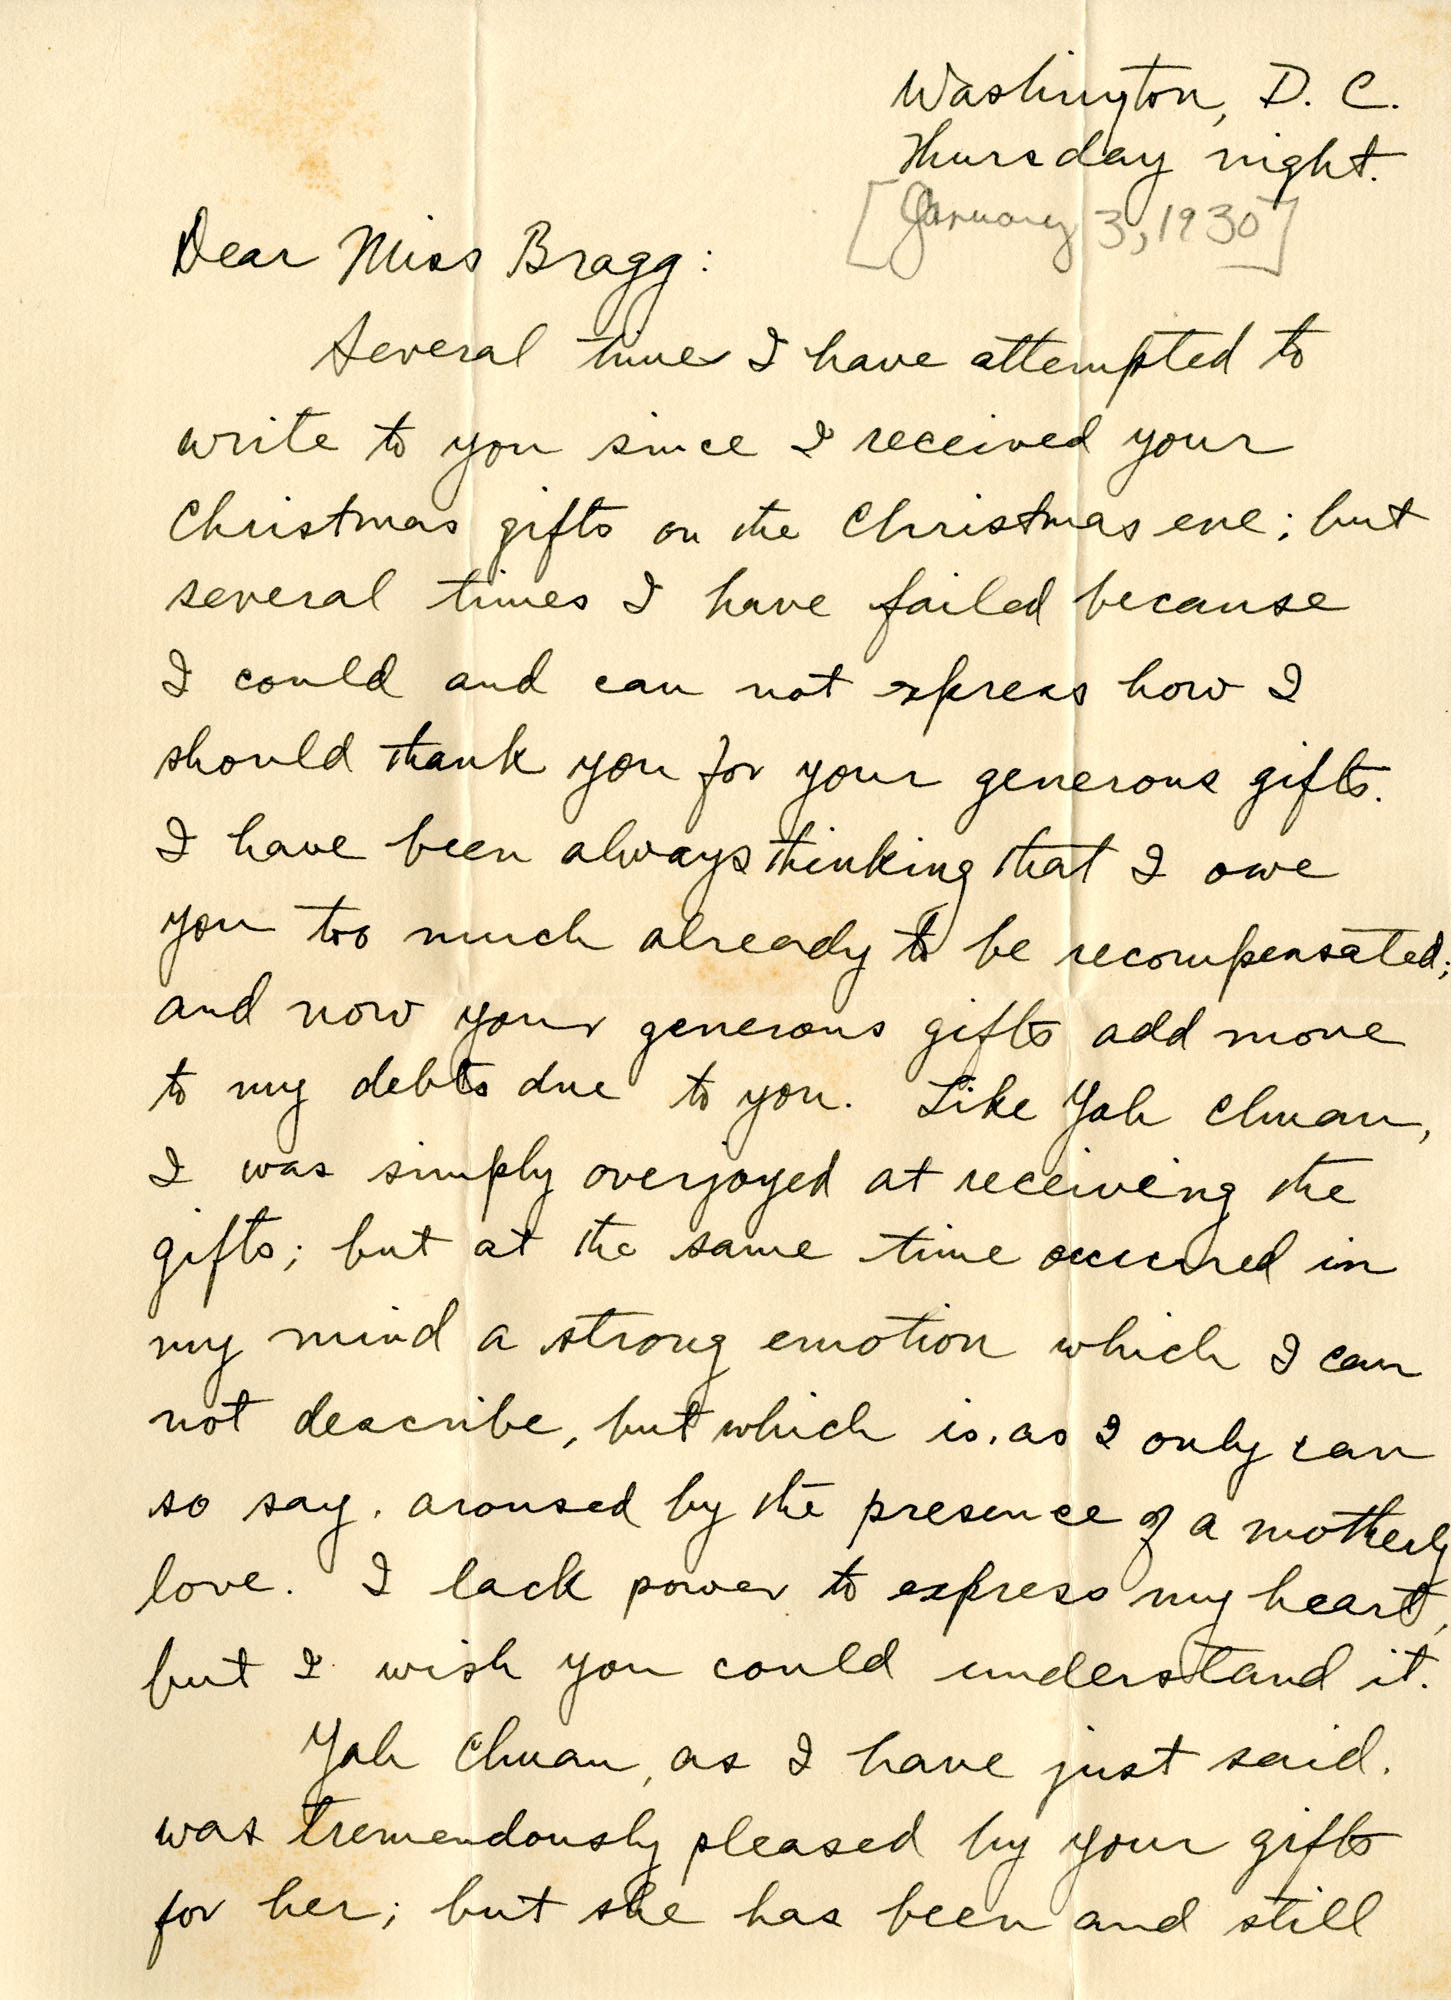 Letter from Fong Lee Wong to Laura M. Bragg, January 3, 1930